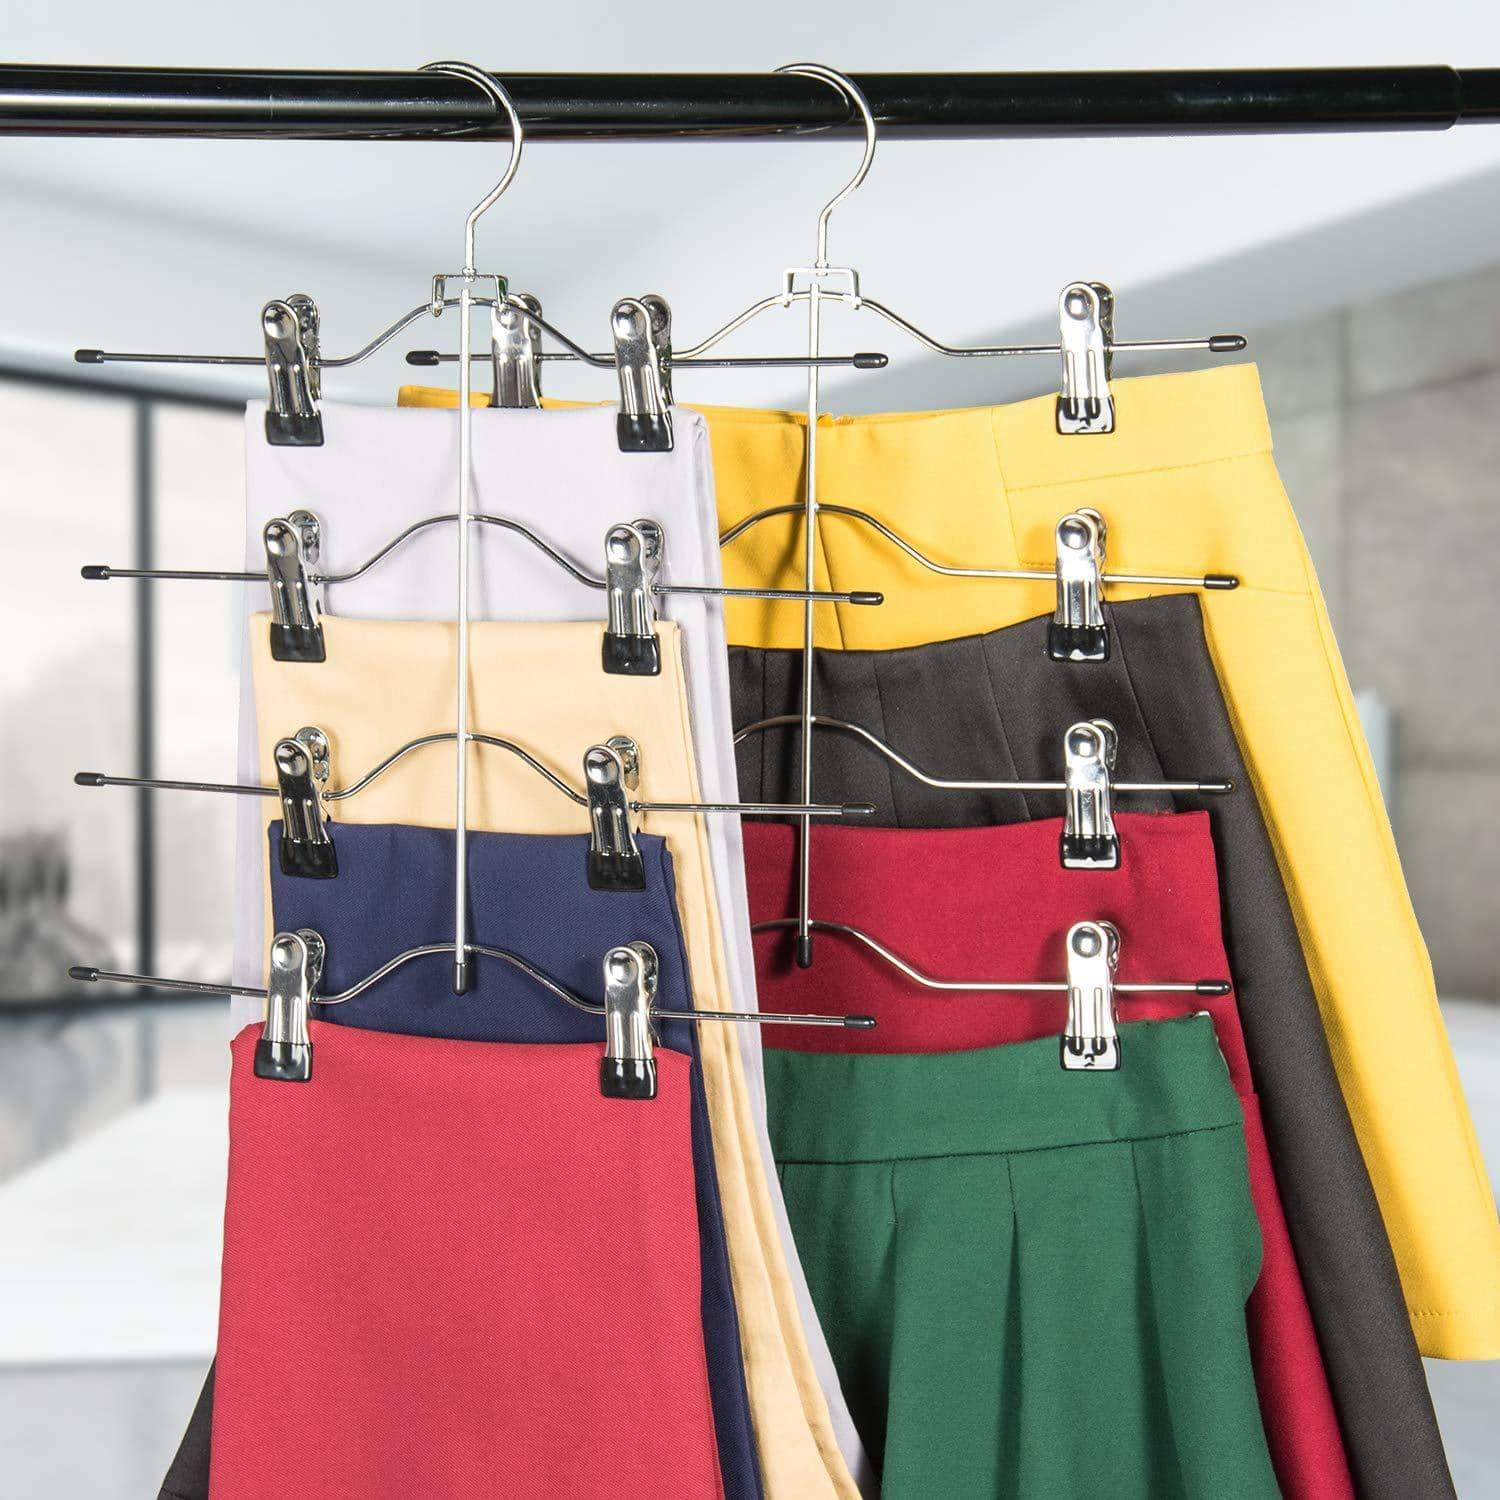 Discover the best frezon pants hangers space saving skirt hangers with clips metal trouser clip hangers four tier heavy duty ultra thin with 360 degree chrome swivel hook 5 pack